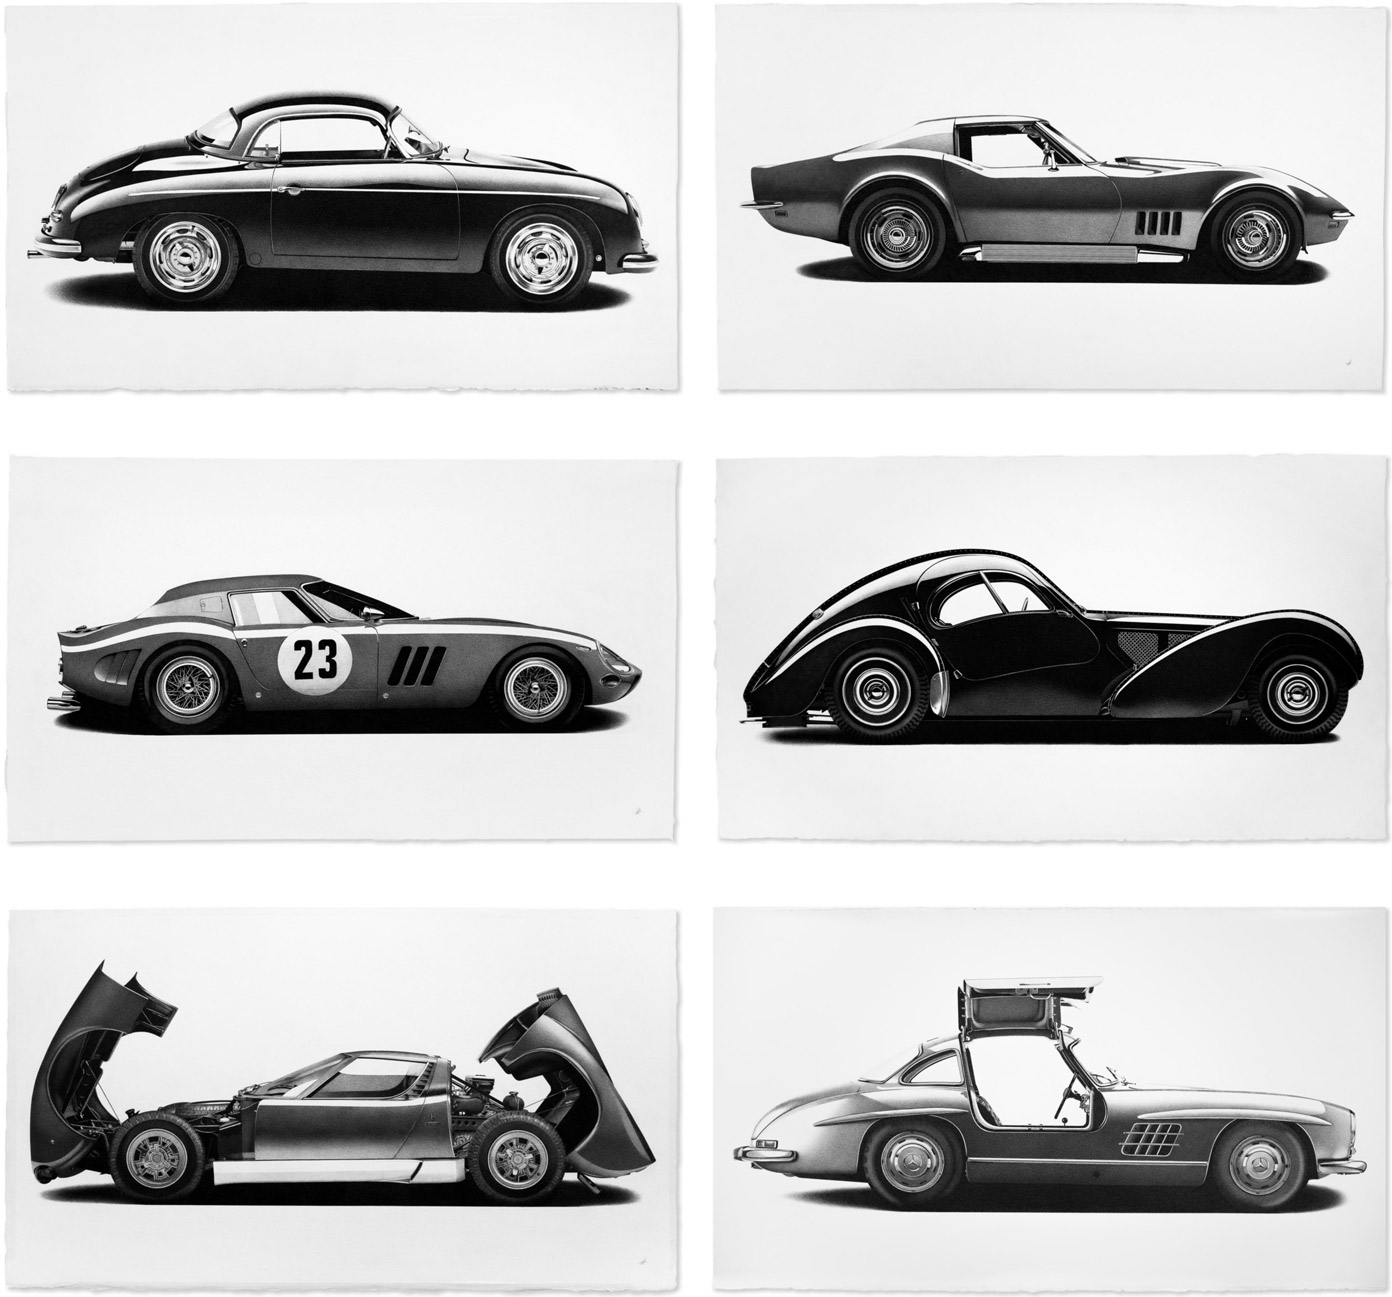 Drawings of classic cars by Alessandro Paglia.